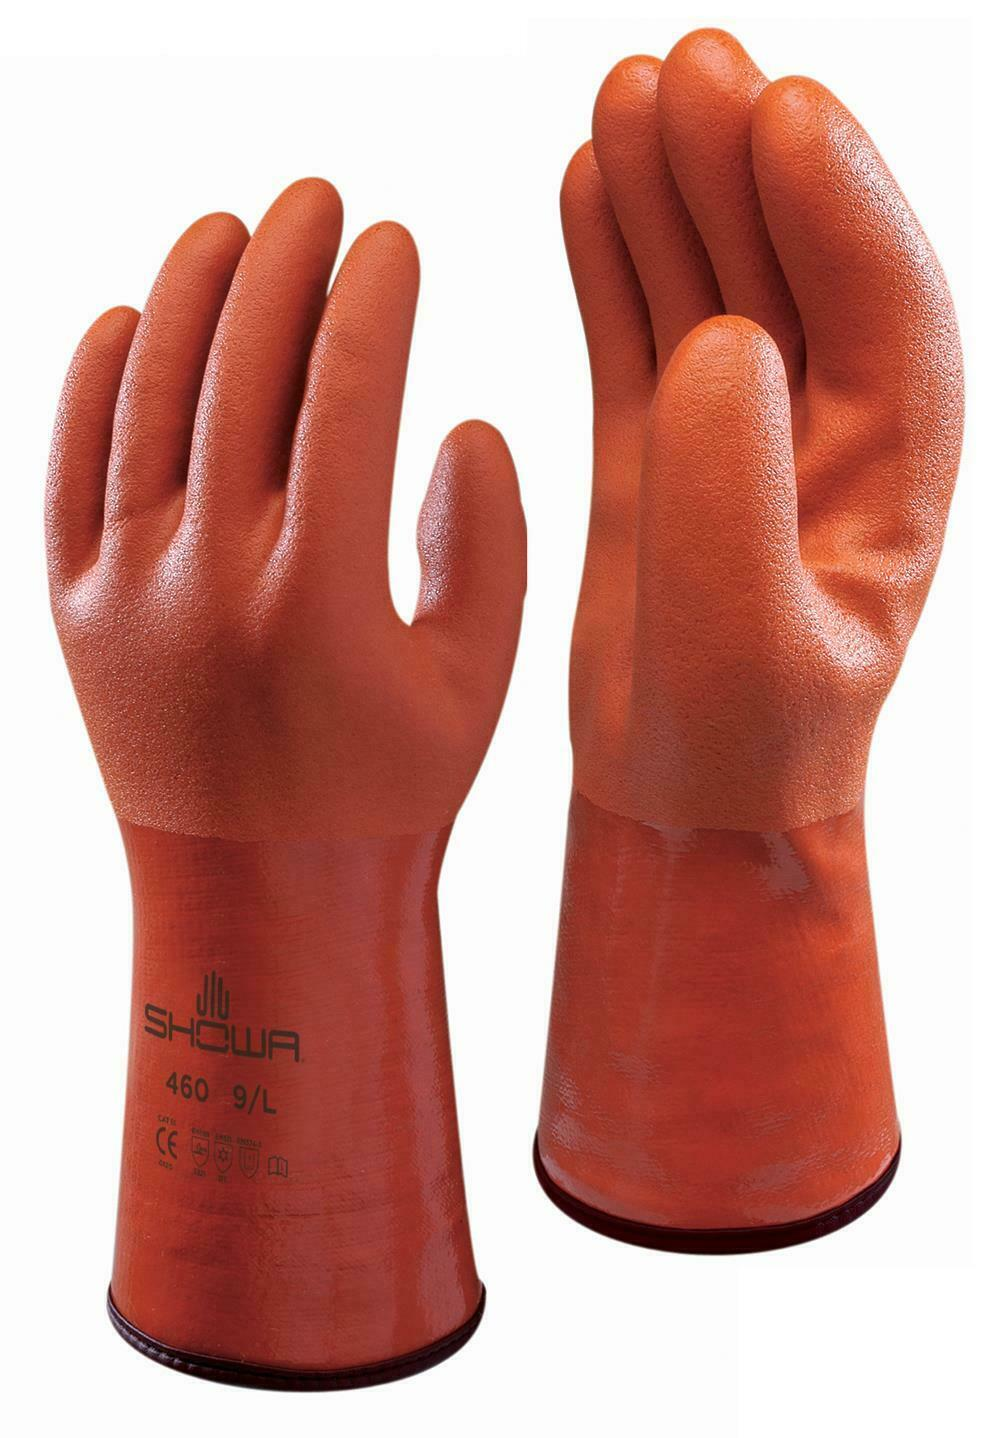 Showa 460 Insulated Liner PVC Coated Chemical & Cold Protective Gauntlet Glove